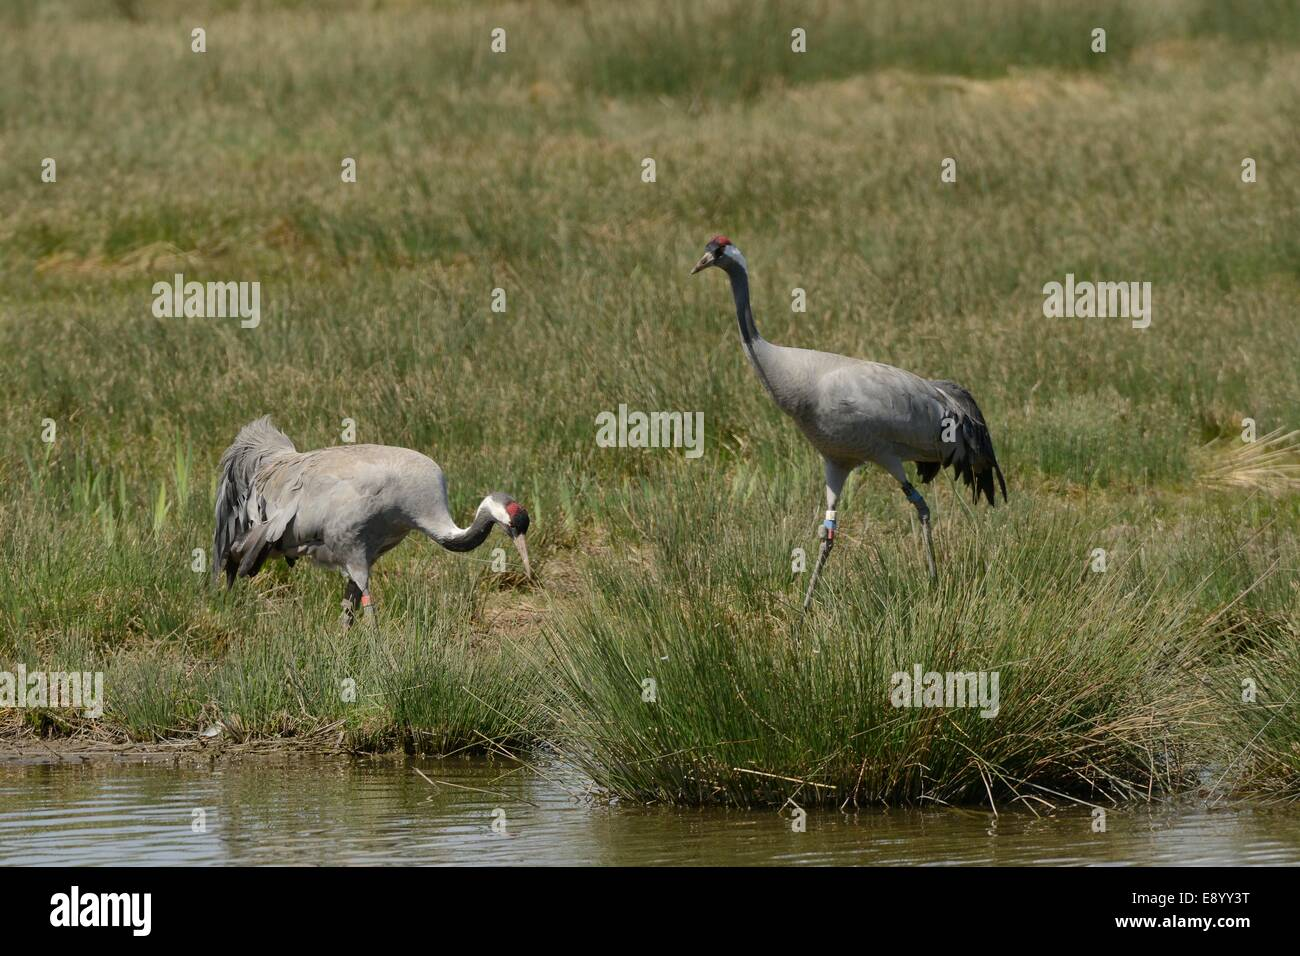 Common / Eurasian crane Grus grus, three year old pair Bart and Wendy released by the Great Crane Project foraging - Stock Image